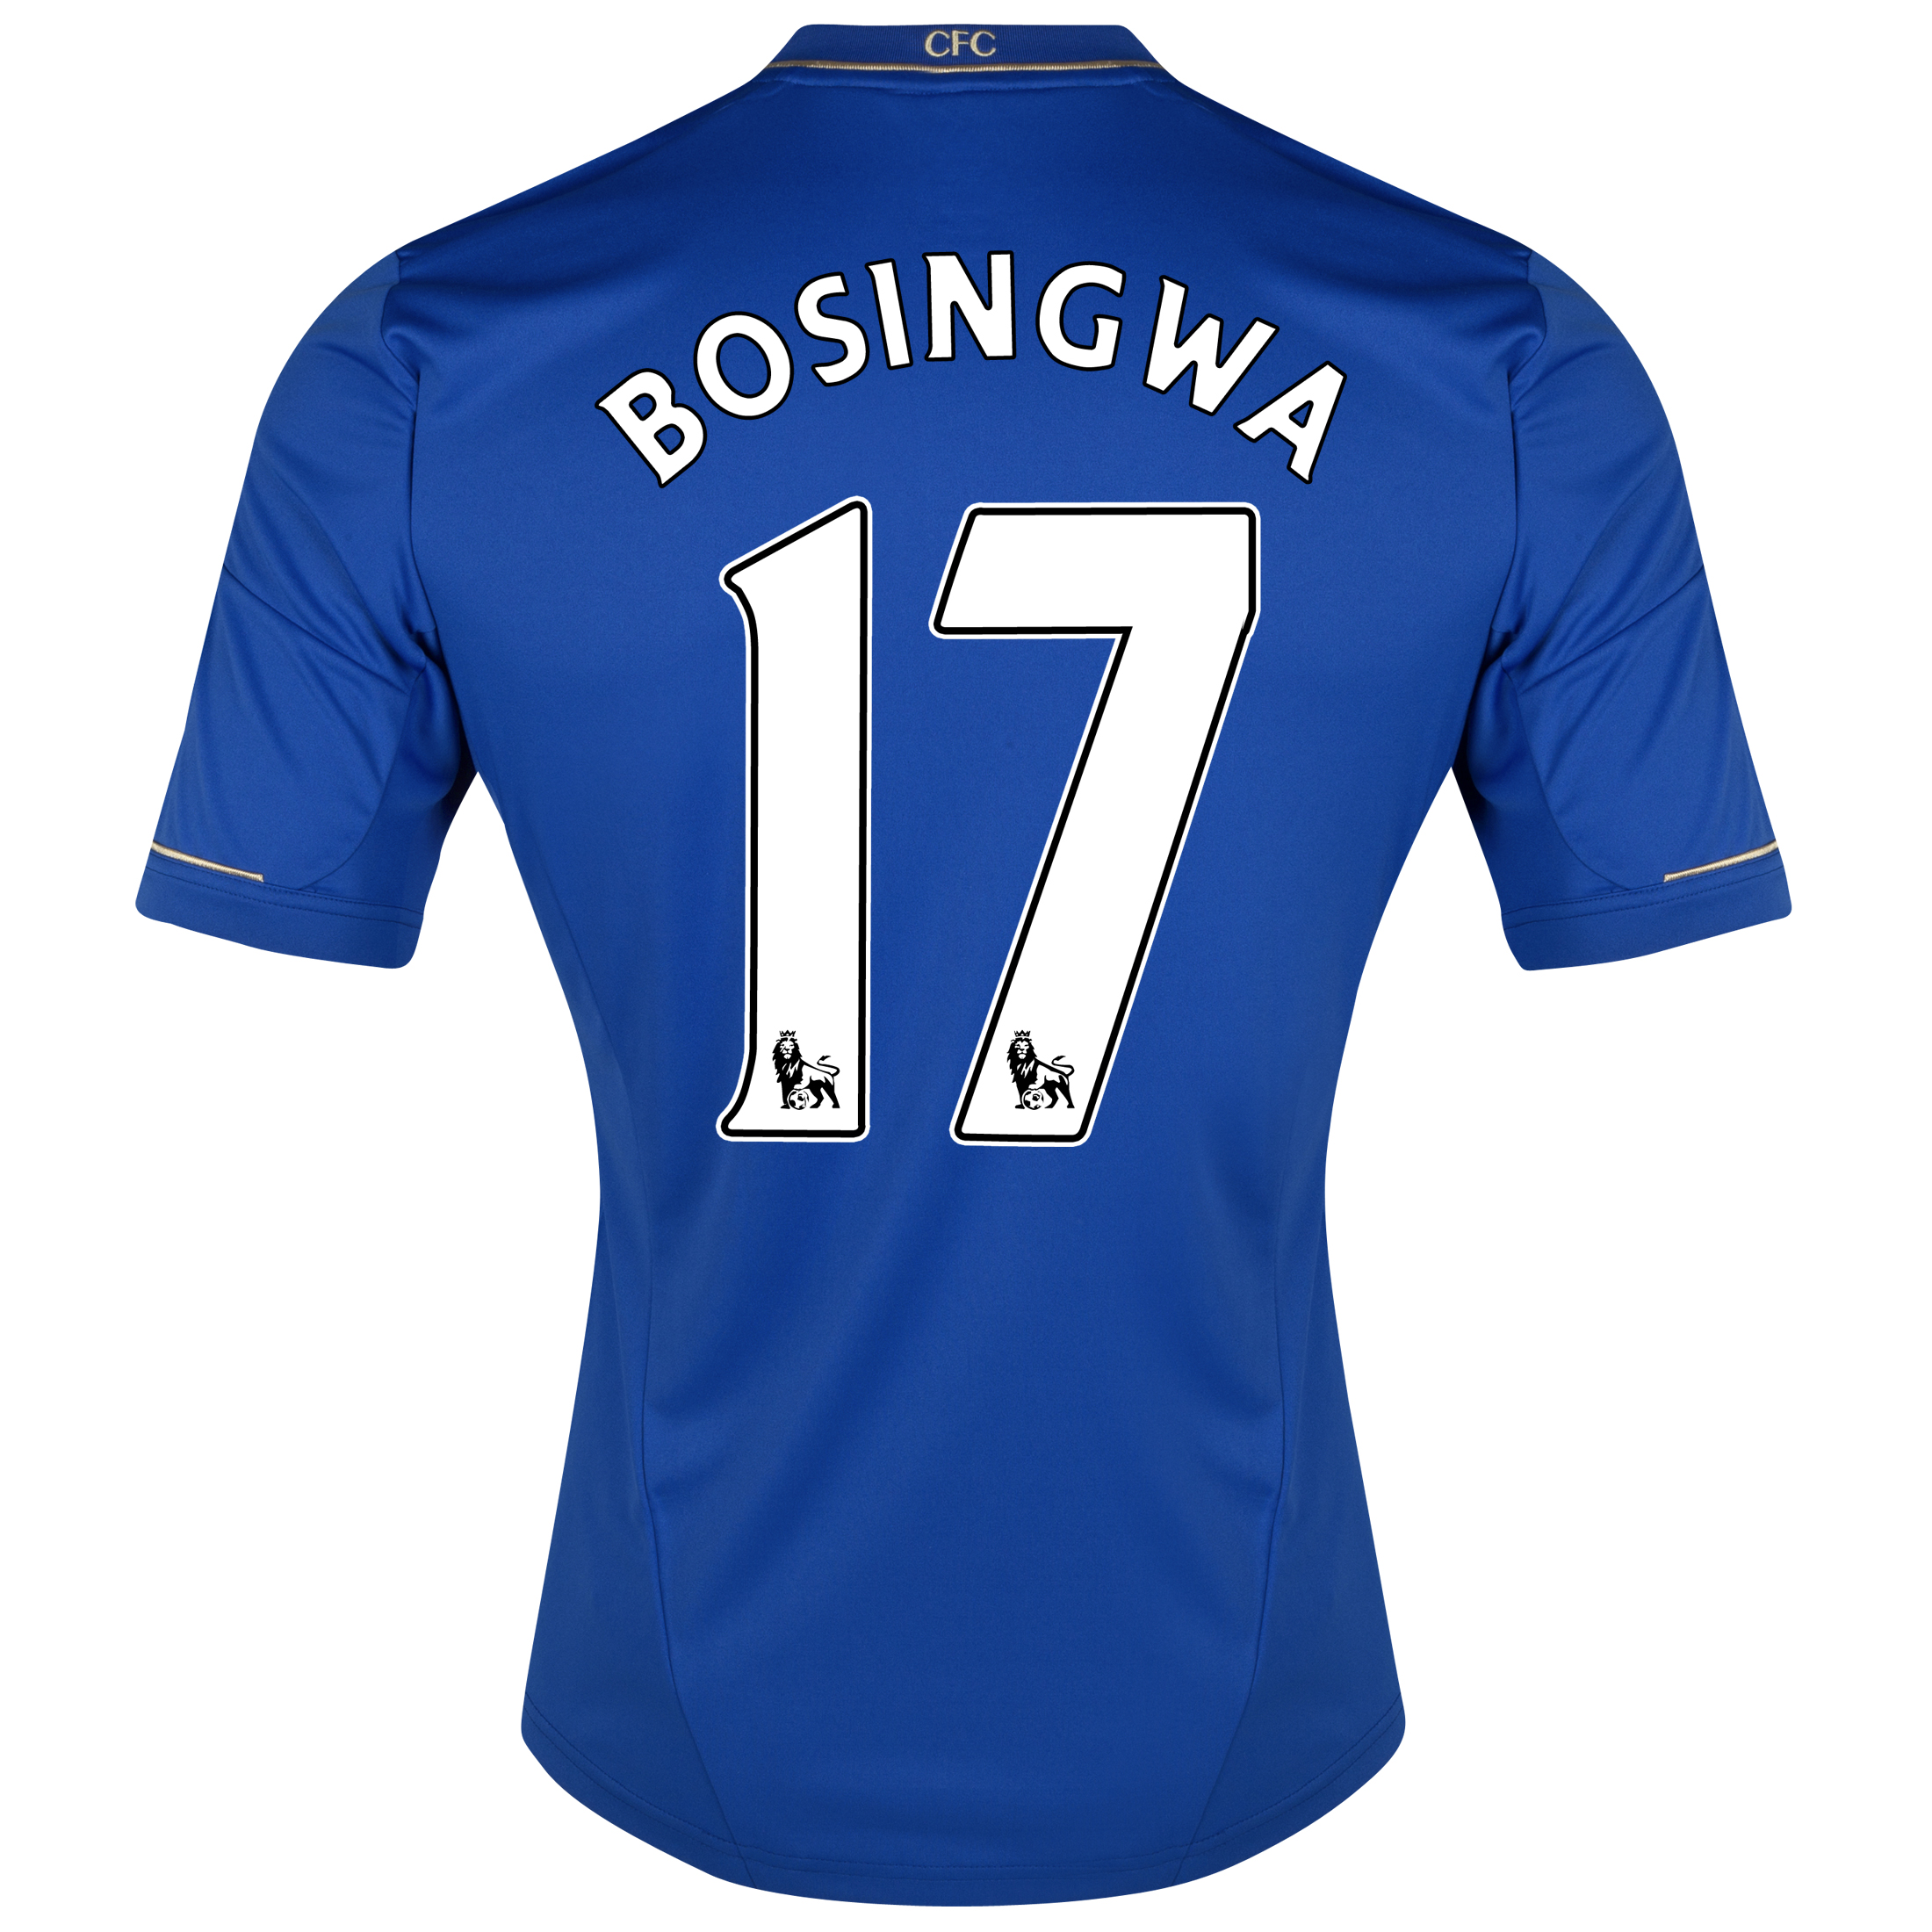 Chelsea Home Shirt 2012/13 - Kids with Bosingwa 17 printing